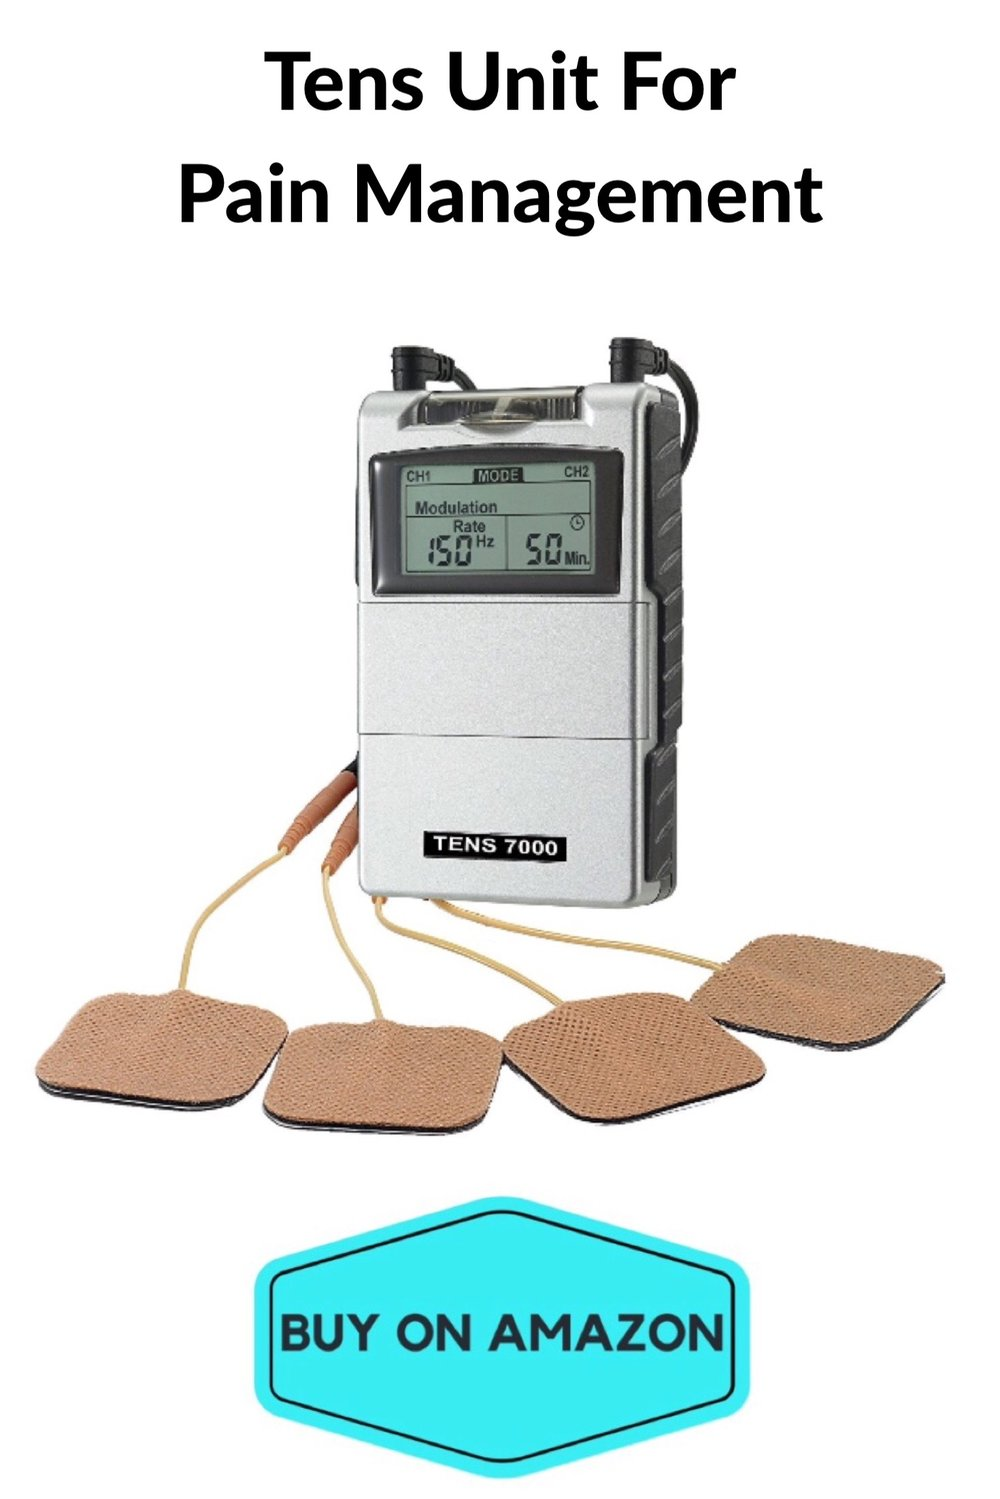 Tens Unit For Pain Management